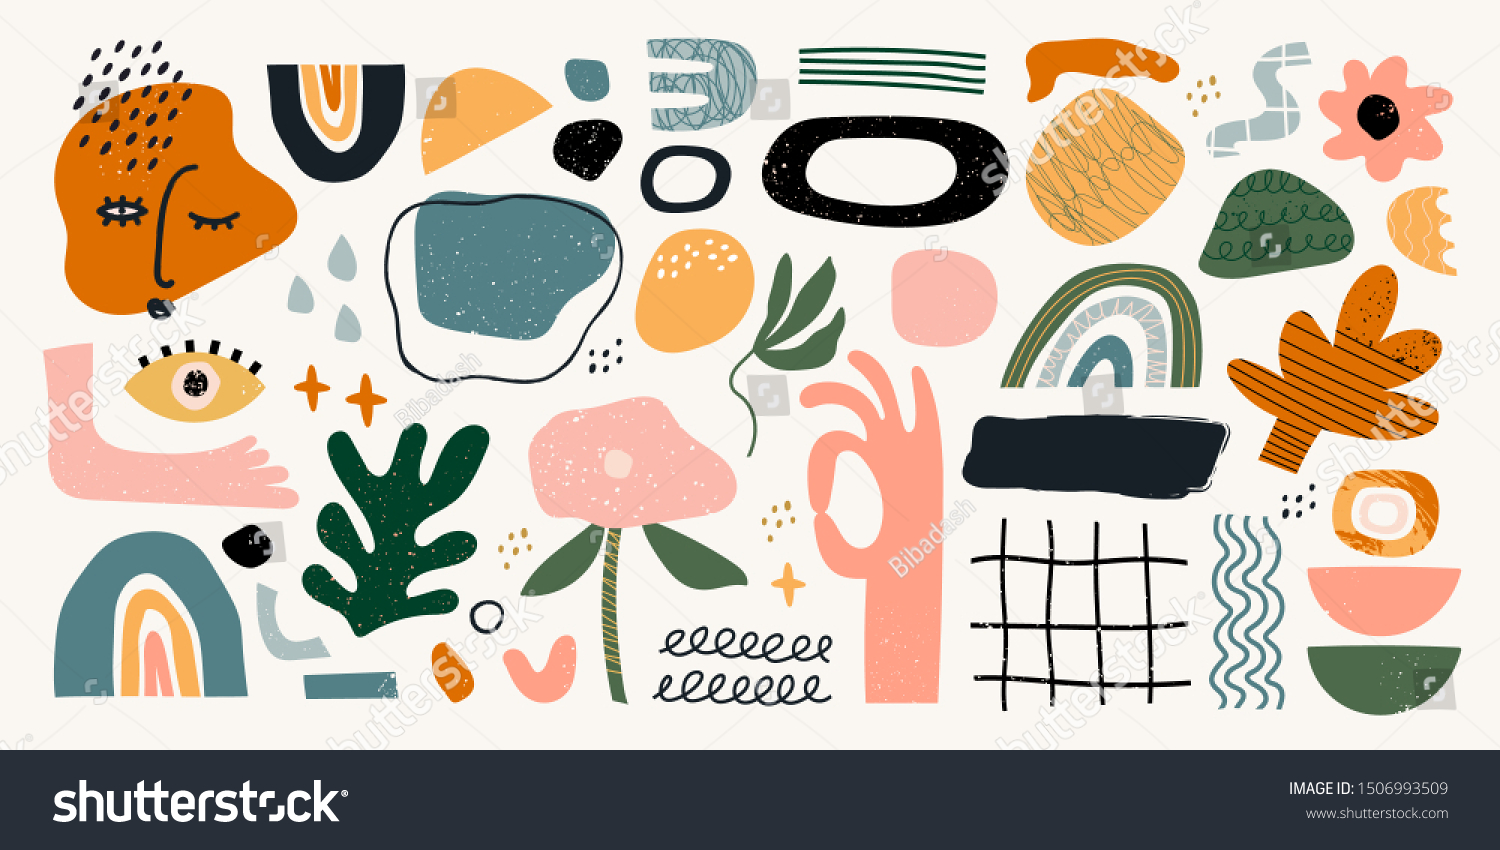 Big set of hand drawn various shapes and doodle objects. Abstract contemporary modern trendy vector illustration. All elements are isolated #1506993509